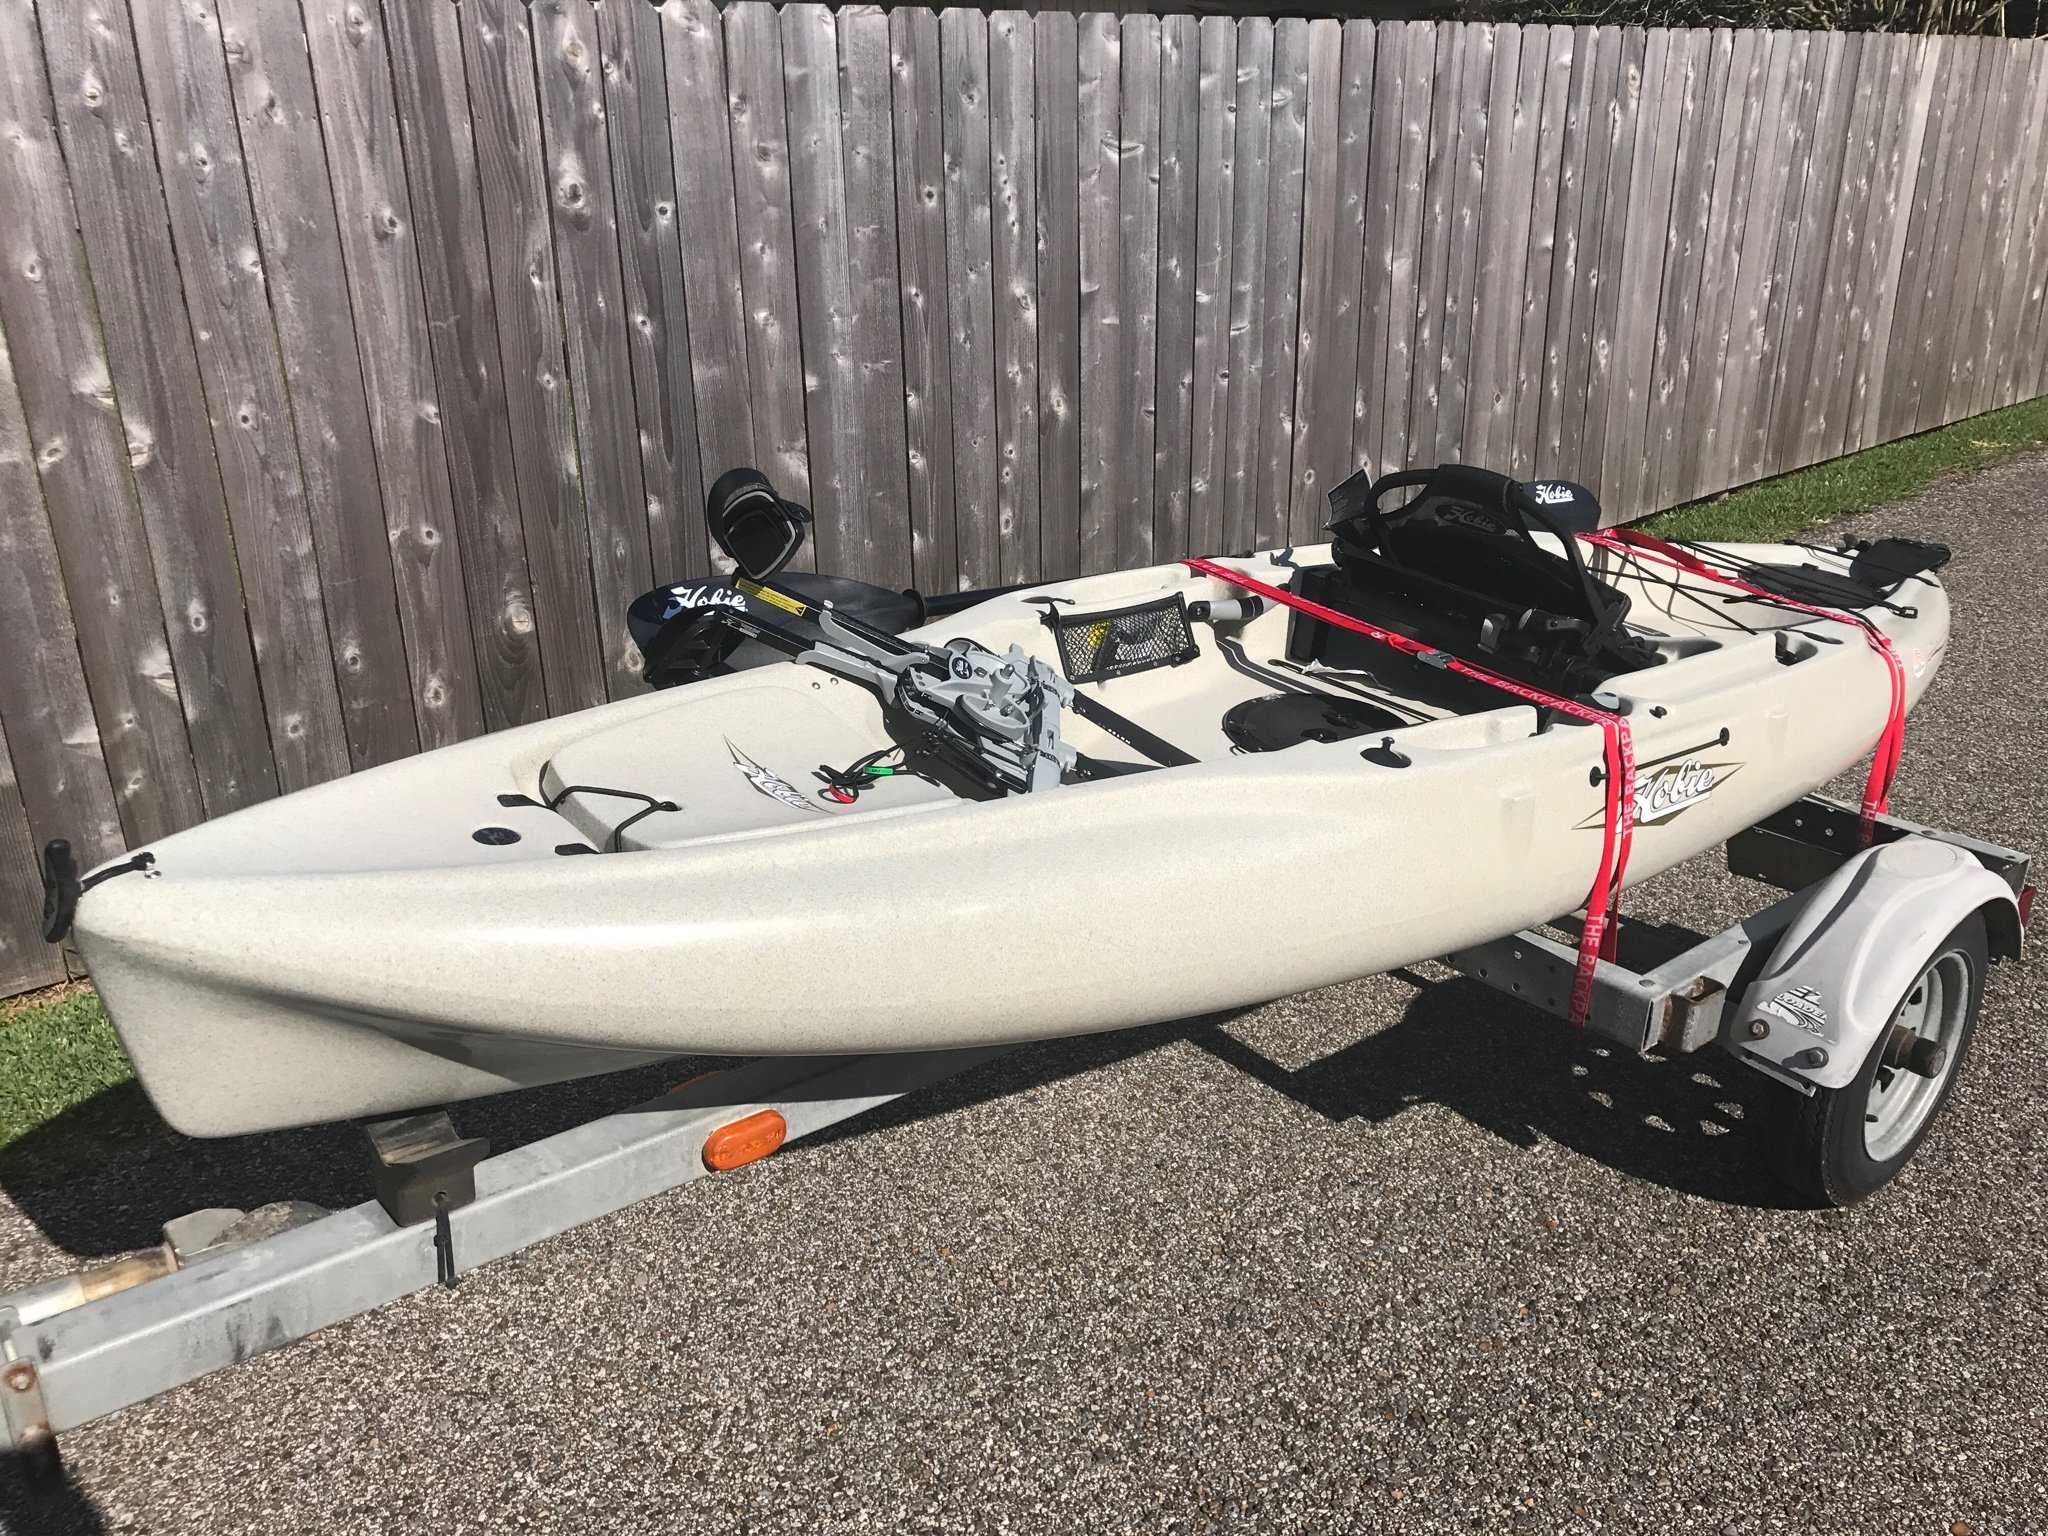 New 2017 Hobie Outback for Sale $2400